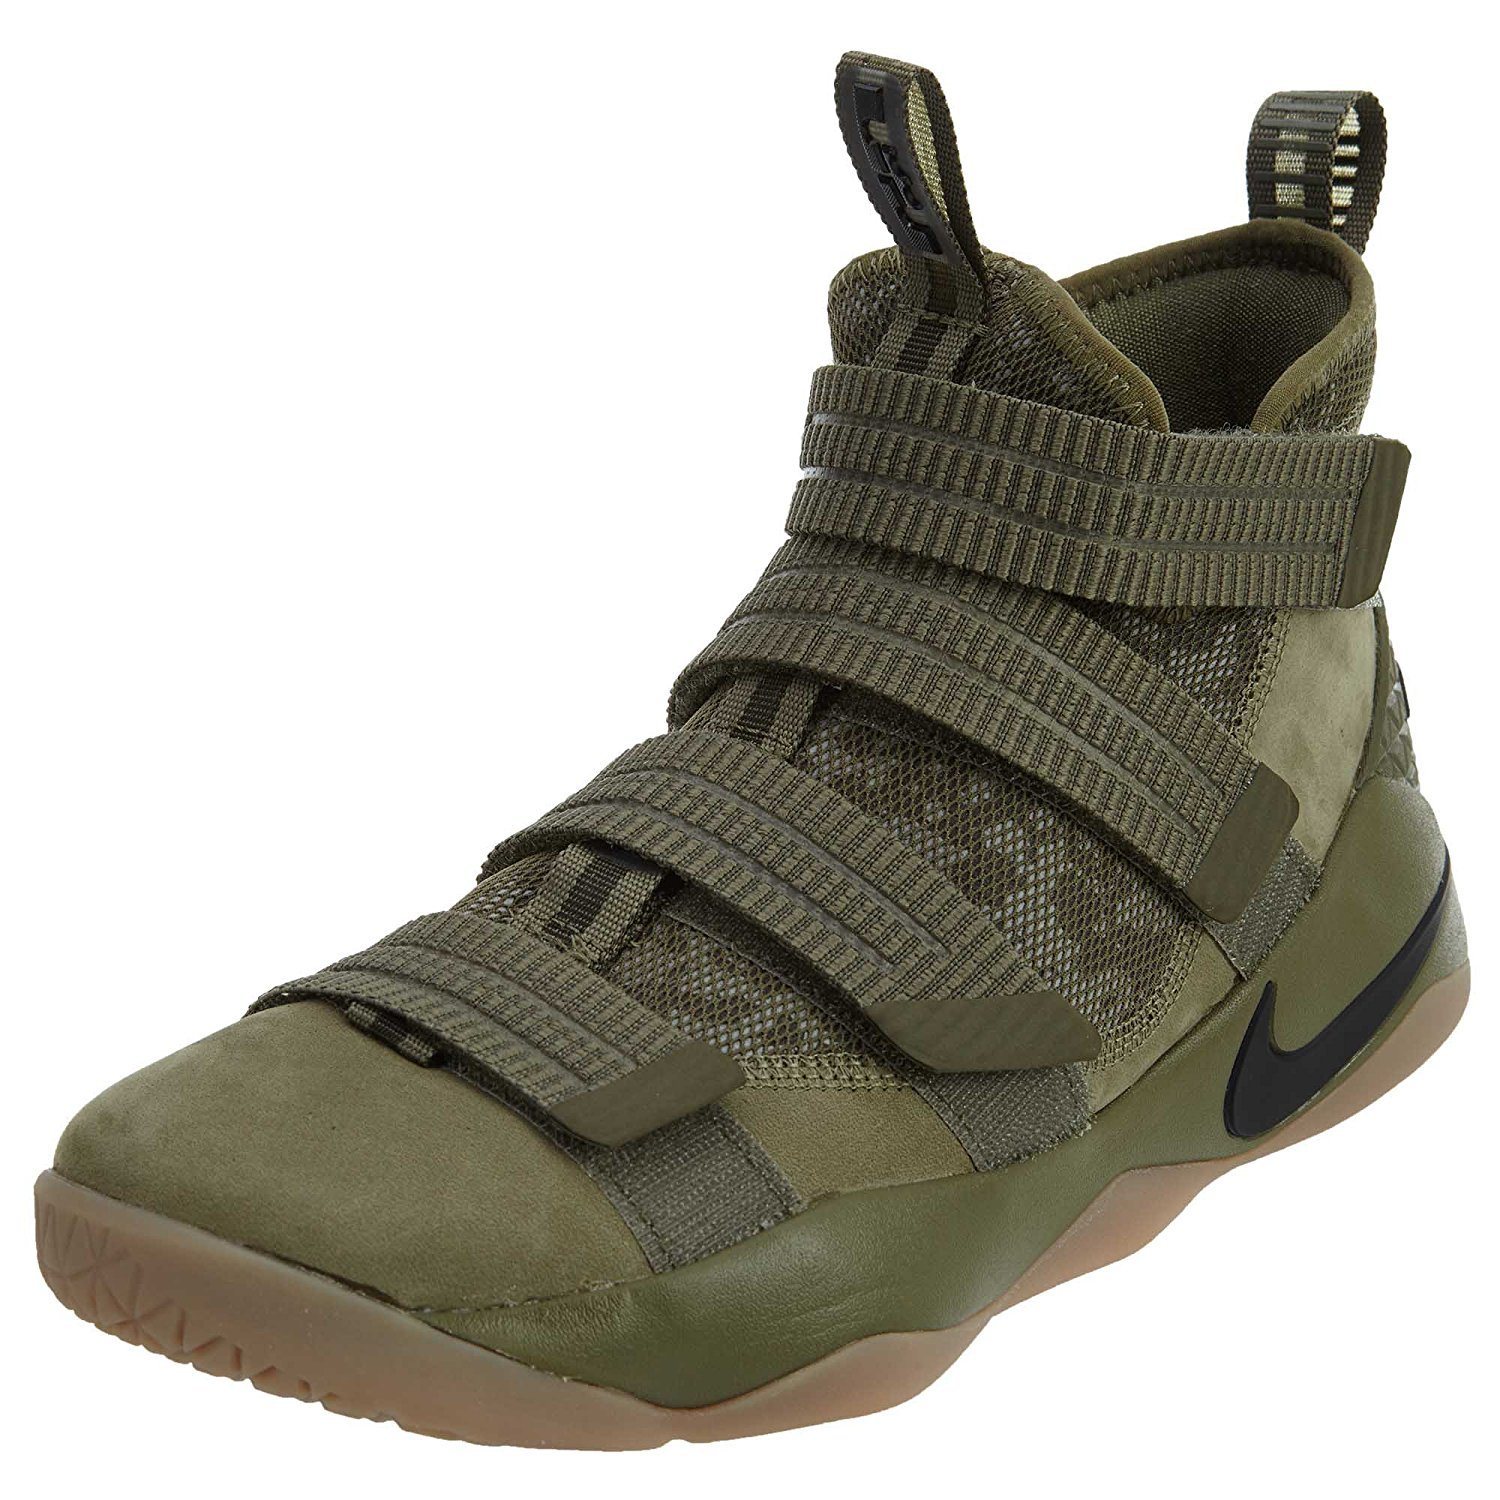 newest 02632 020ba Galleon - NIKE Lebron Soldier Xi SFG Men s Basketball Shoes (10 D(M) US,  Medium Olive Black)